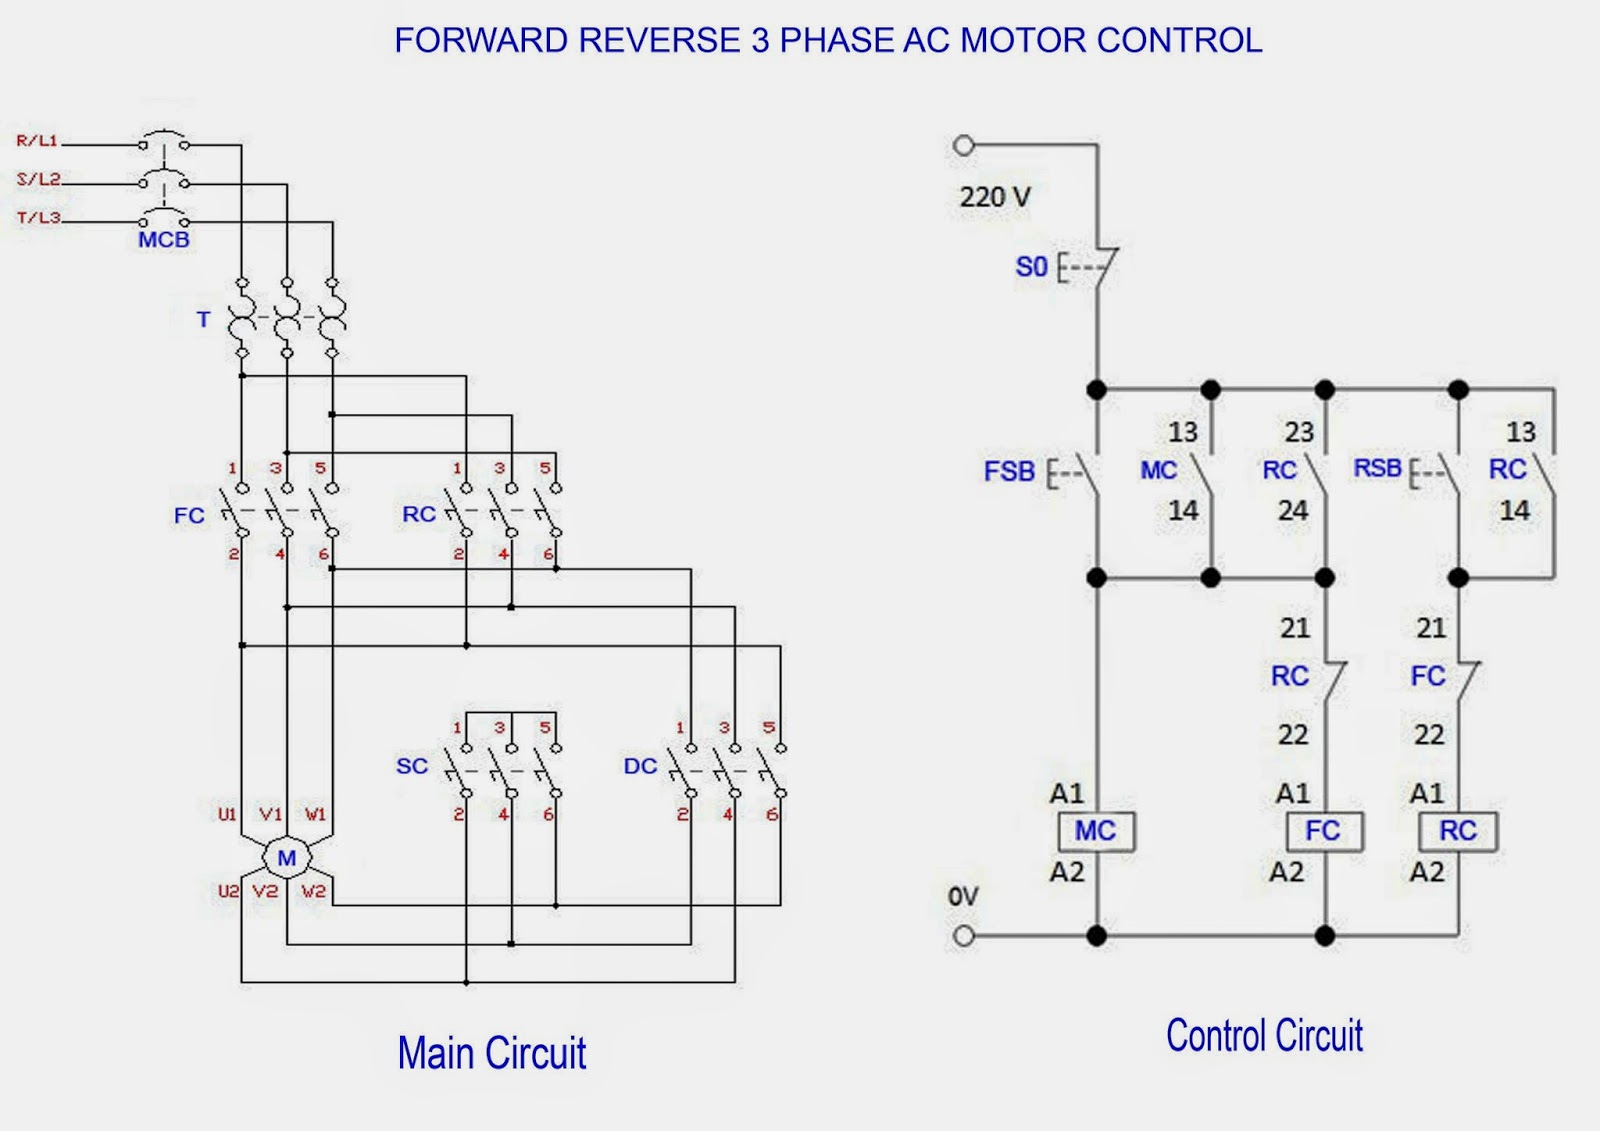 A Star Delta Wiring Diagram Switch on single phase 220 wiring diagram